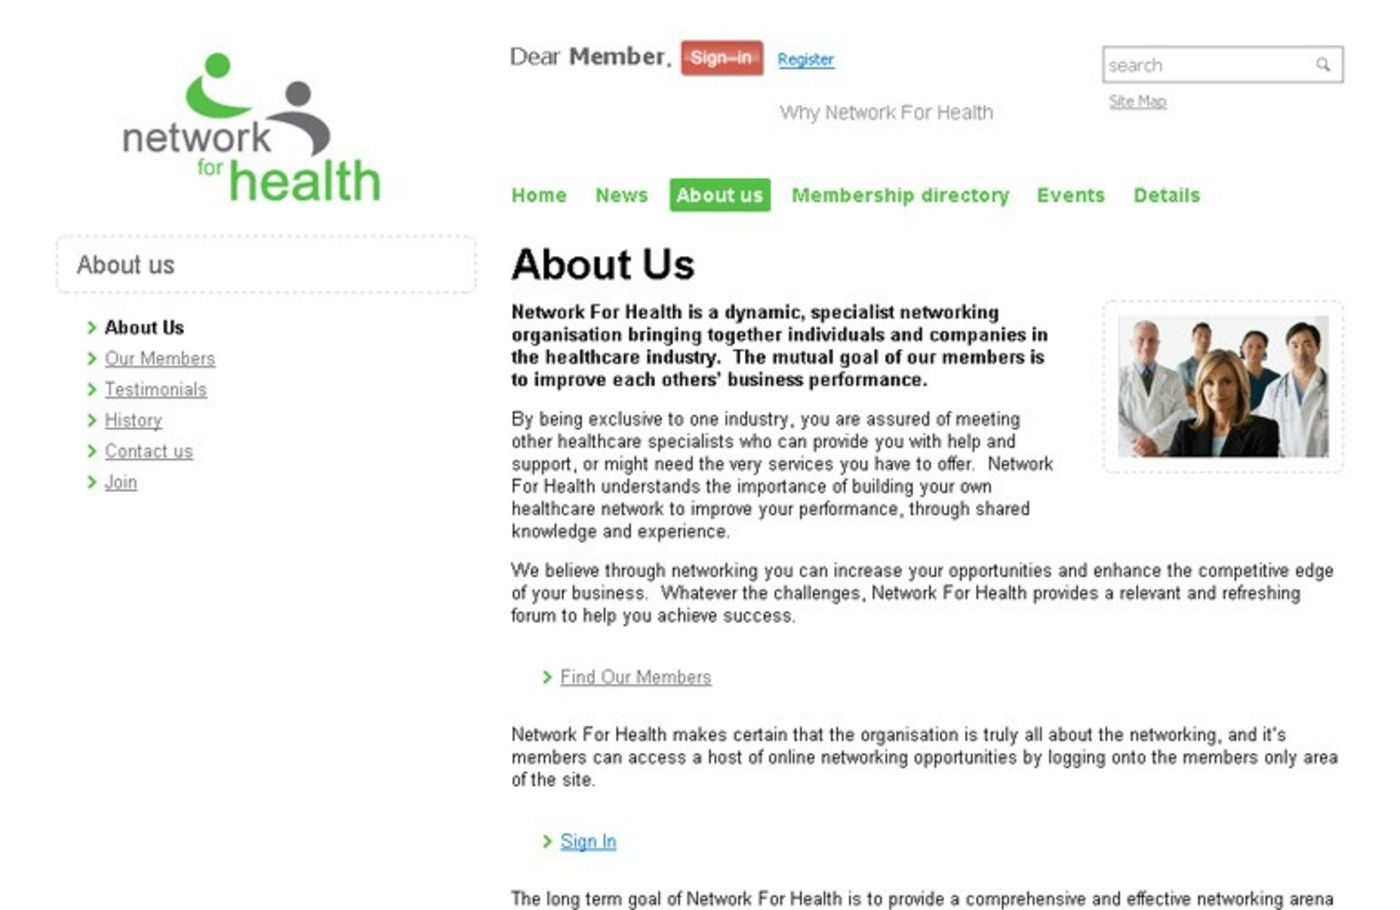 Network For Health About Us